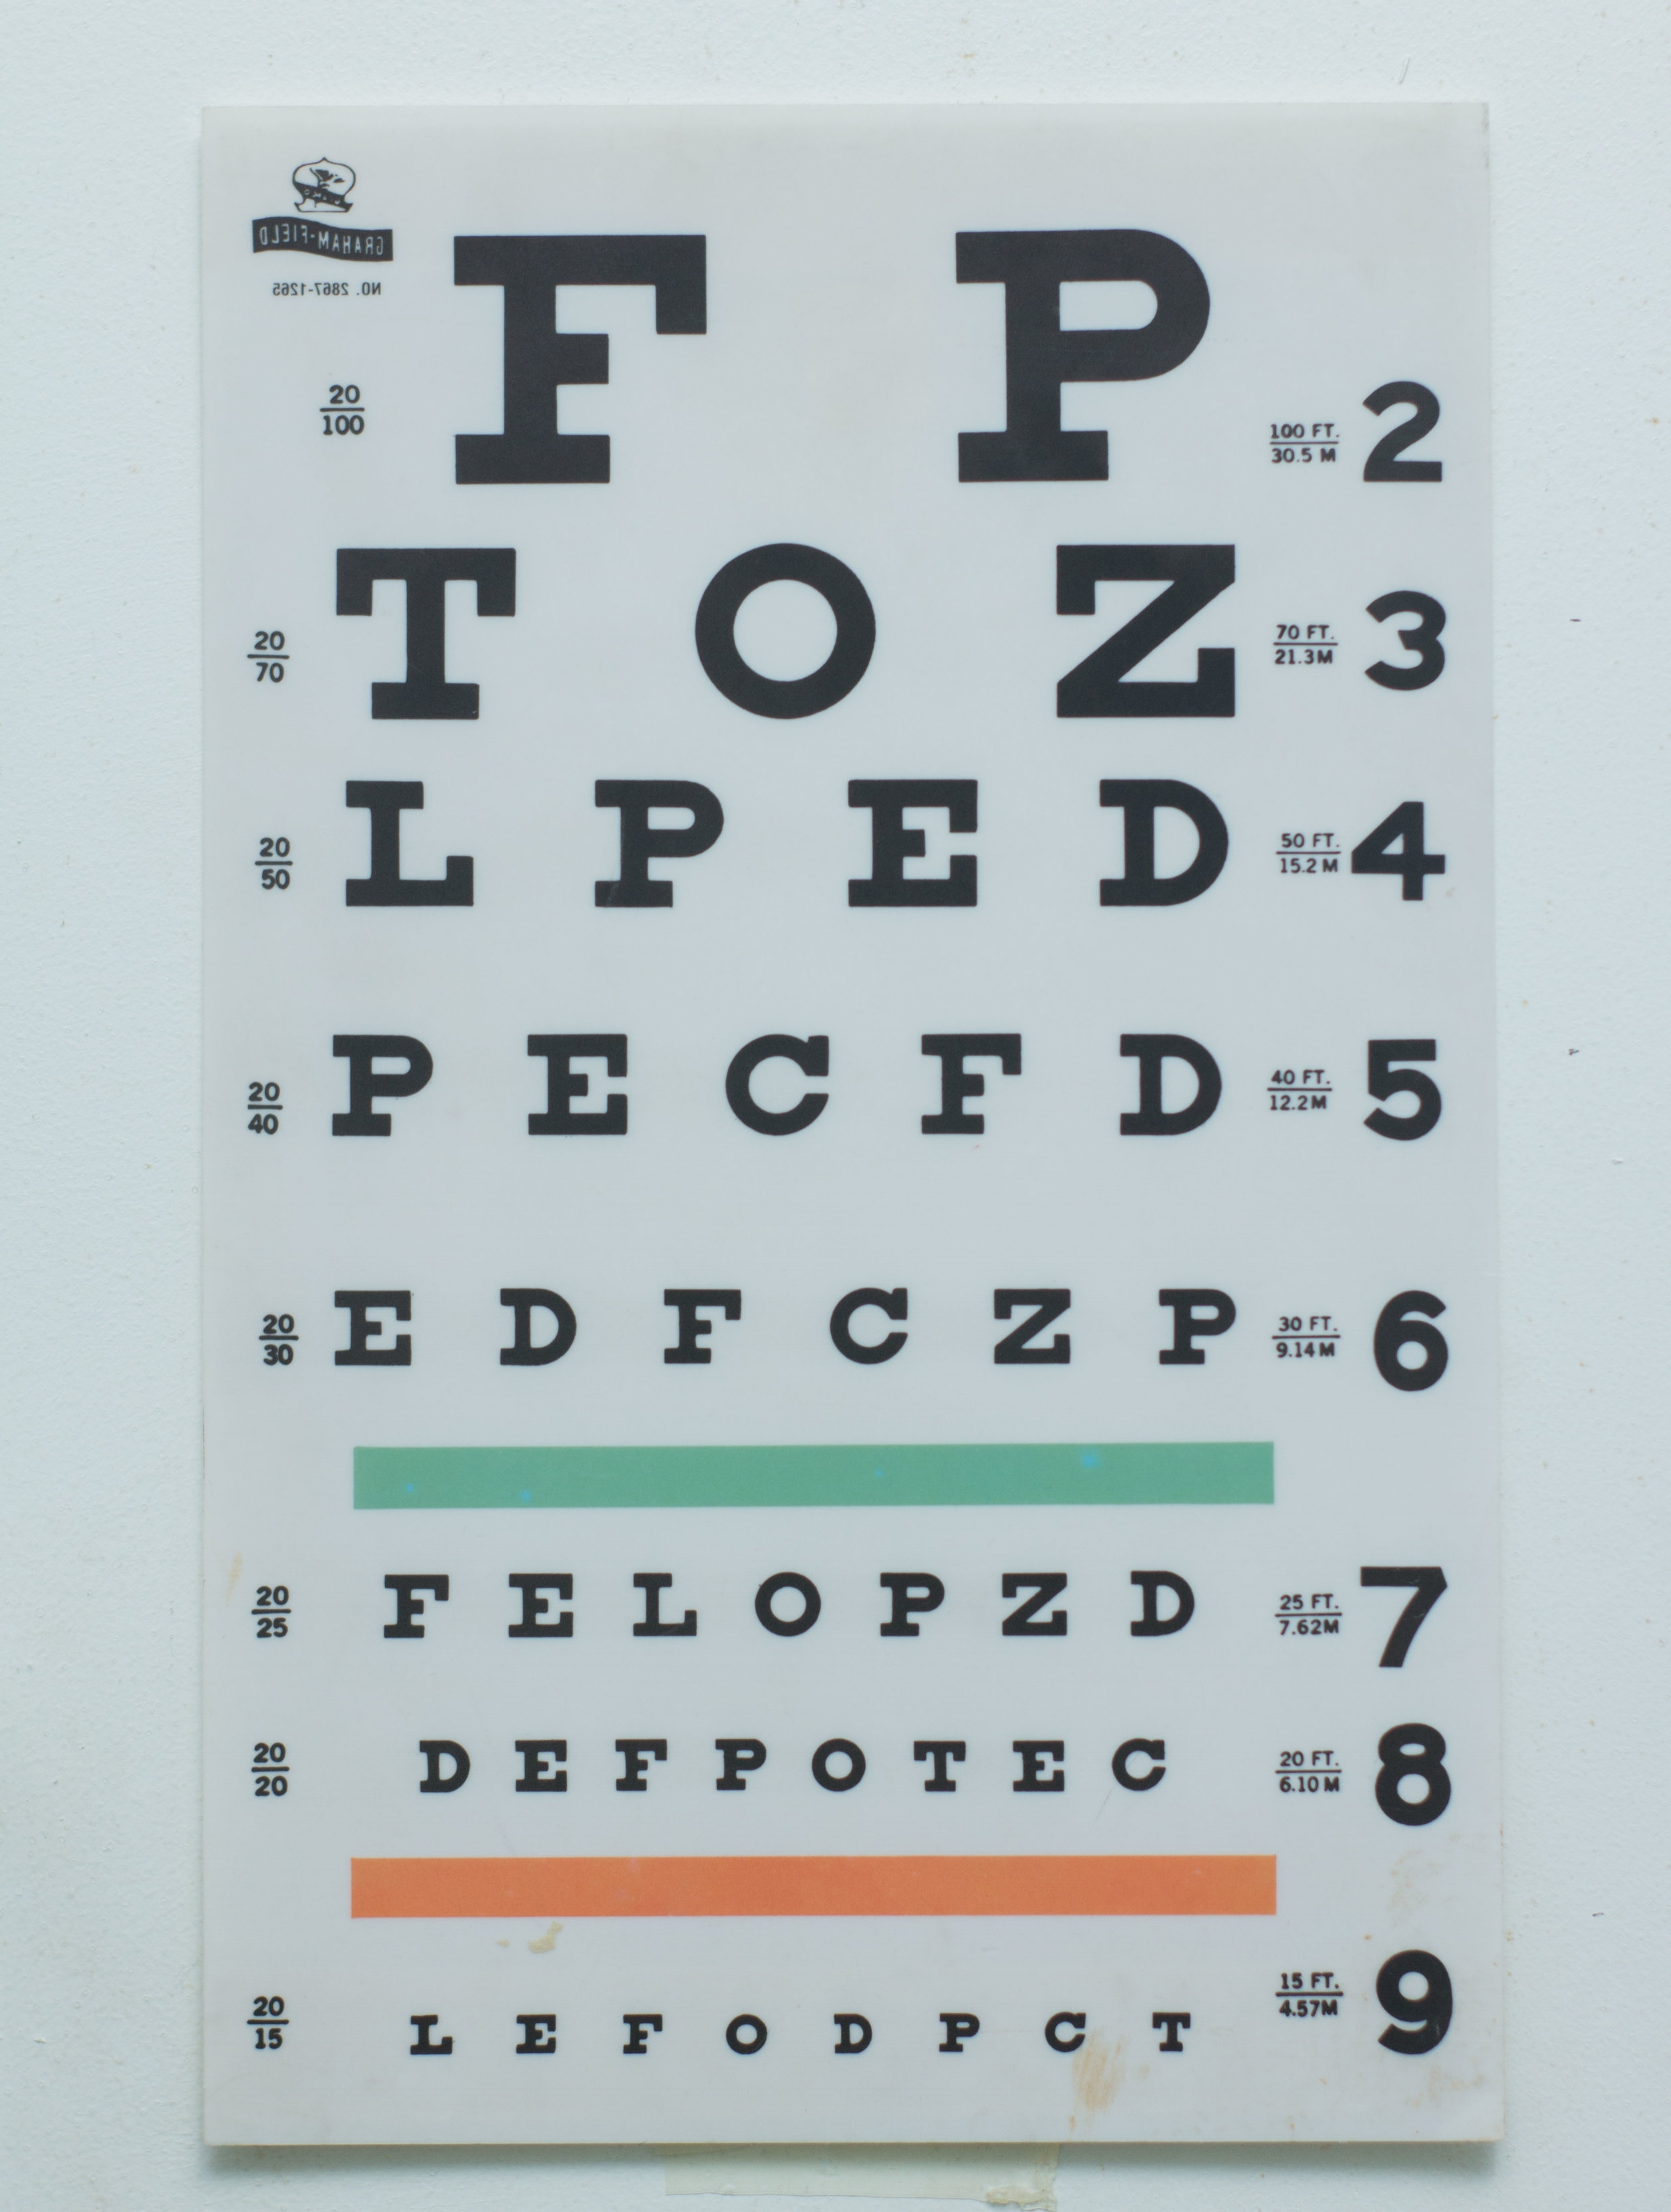 PACKAGE 2 - Basic Package  Features:Complete eye exam + Clear antireflective lenses & occupational frames